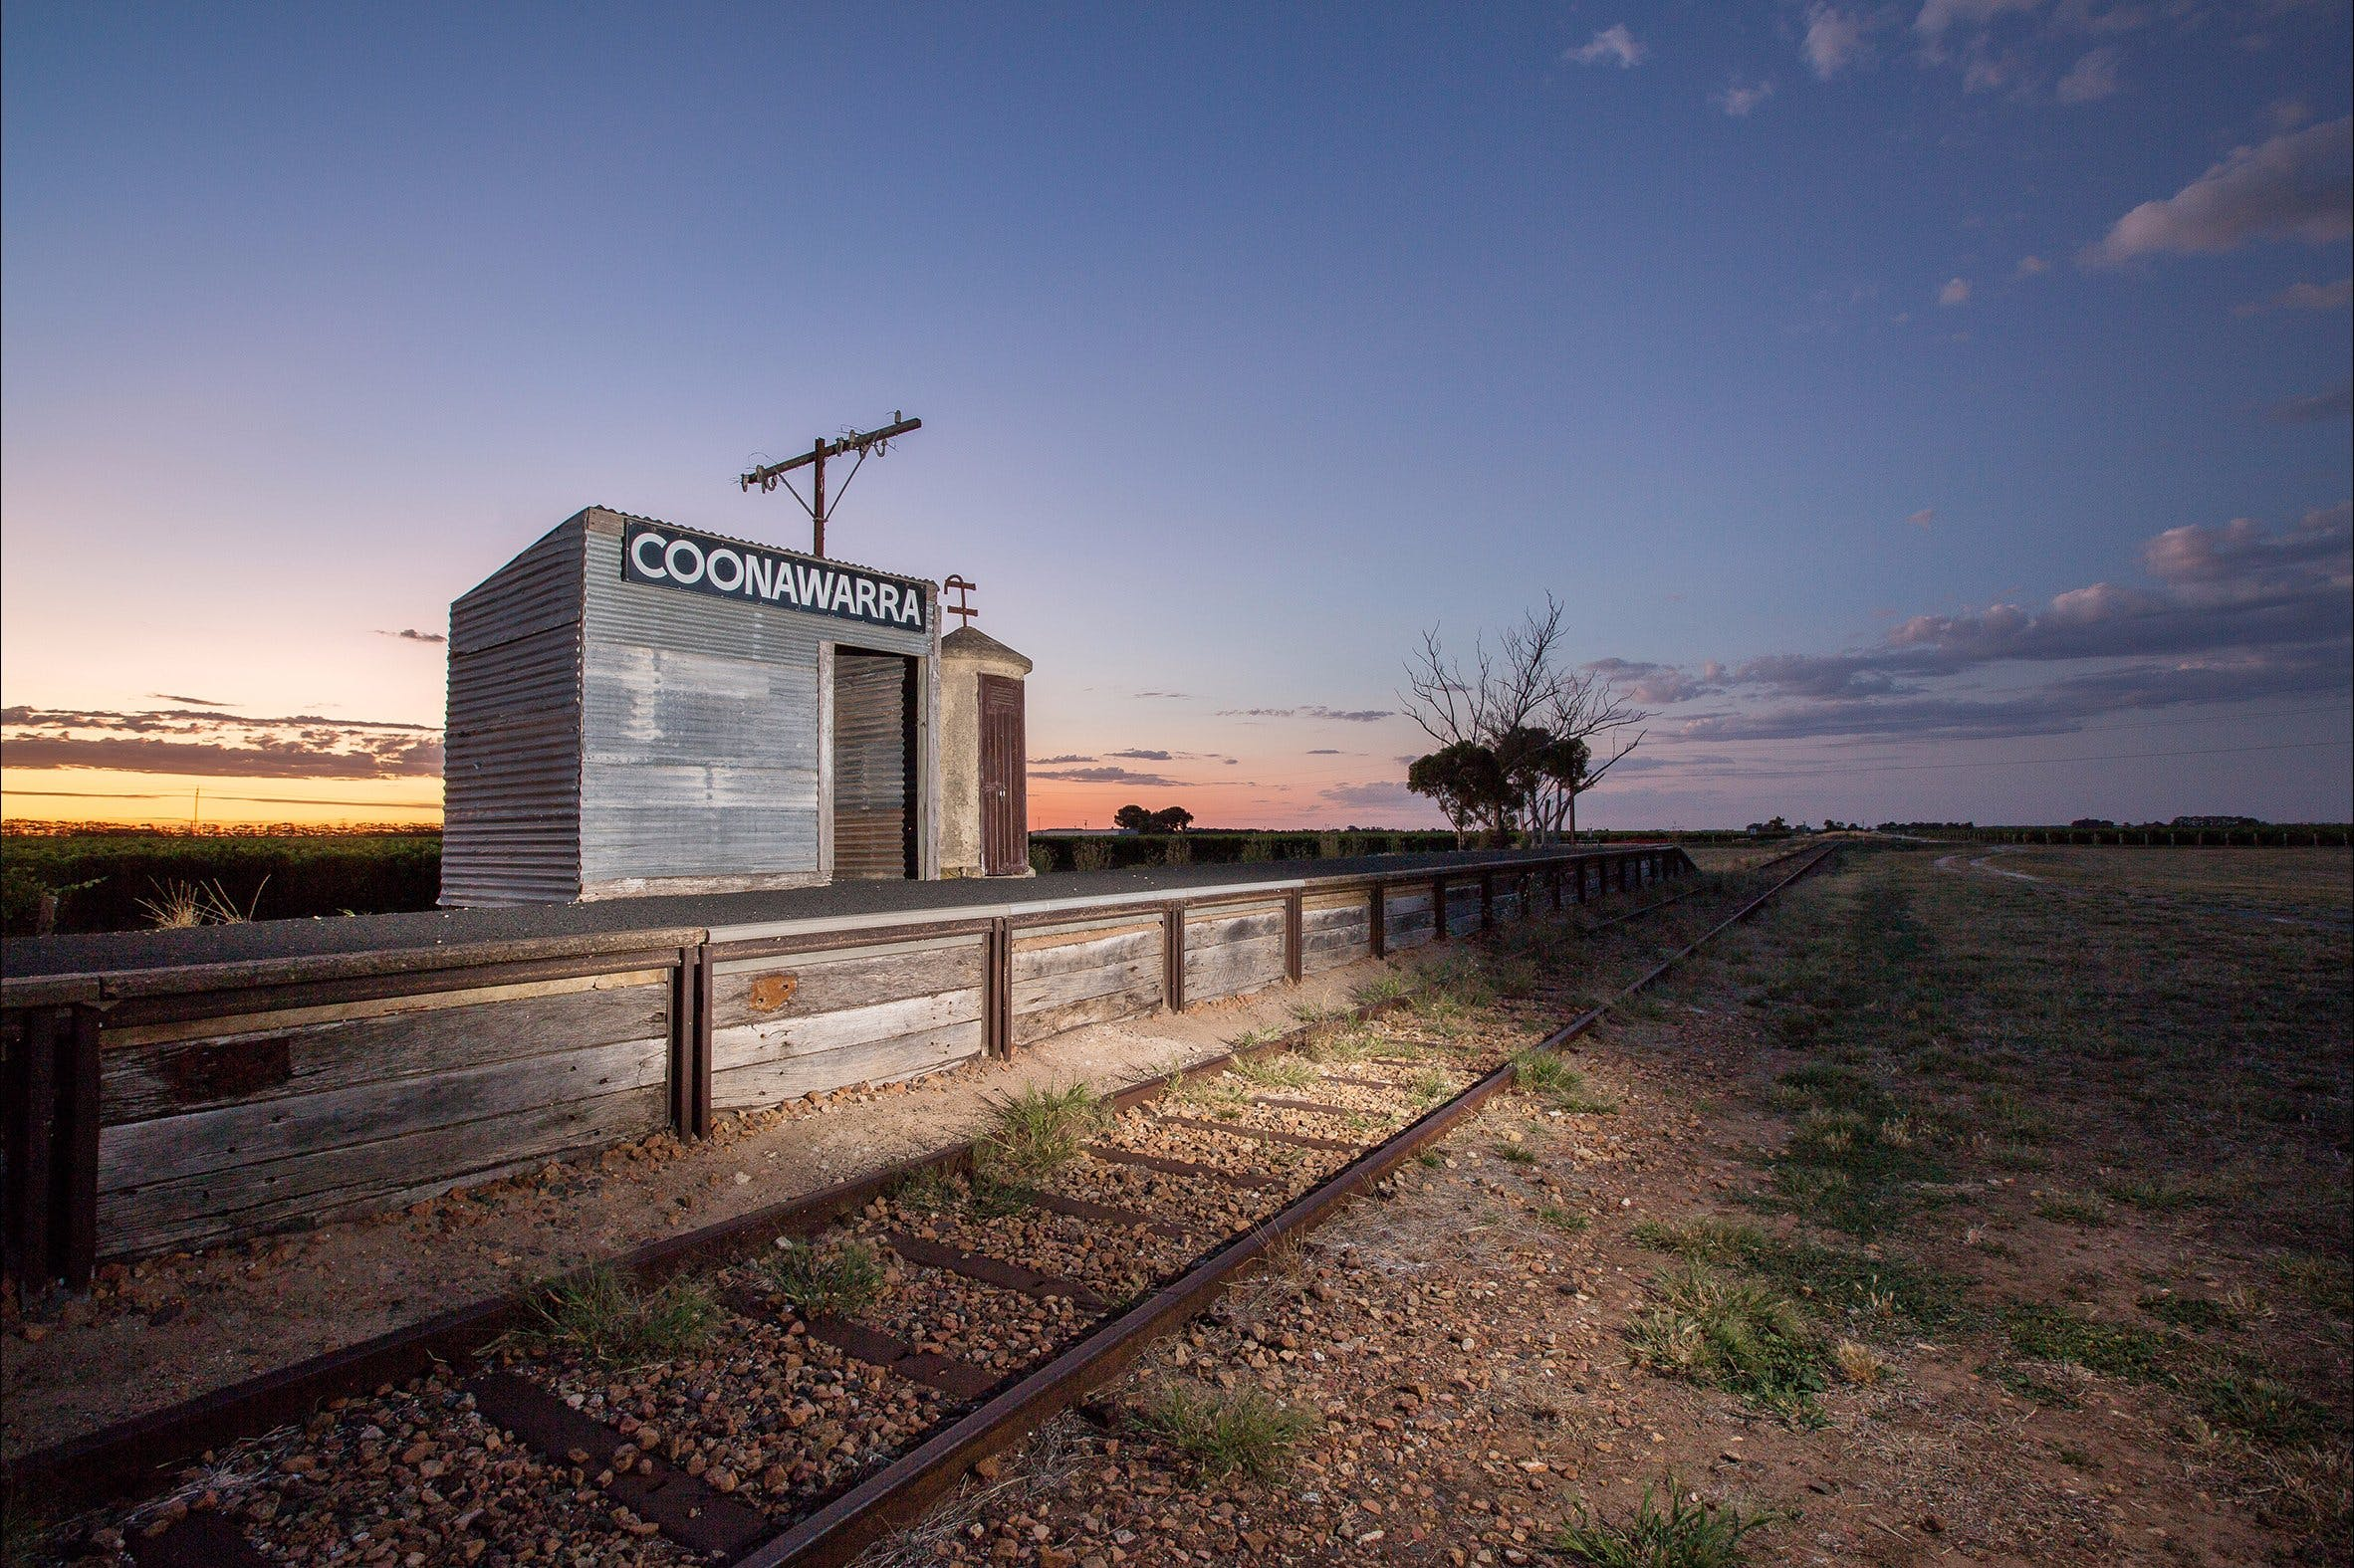 Brand's Laira of Coonawarra - Restaurant Find